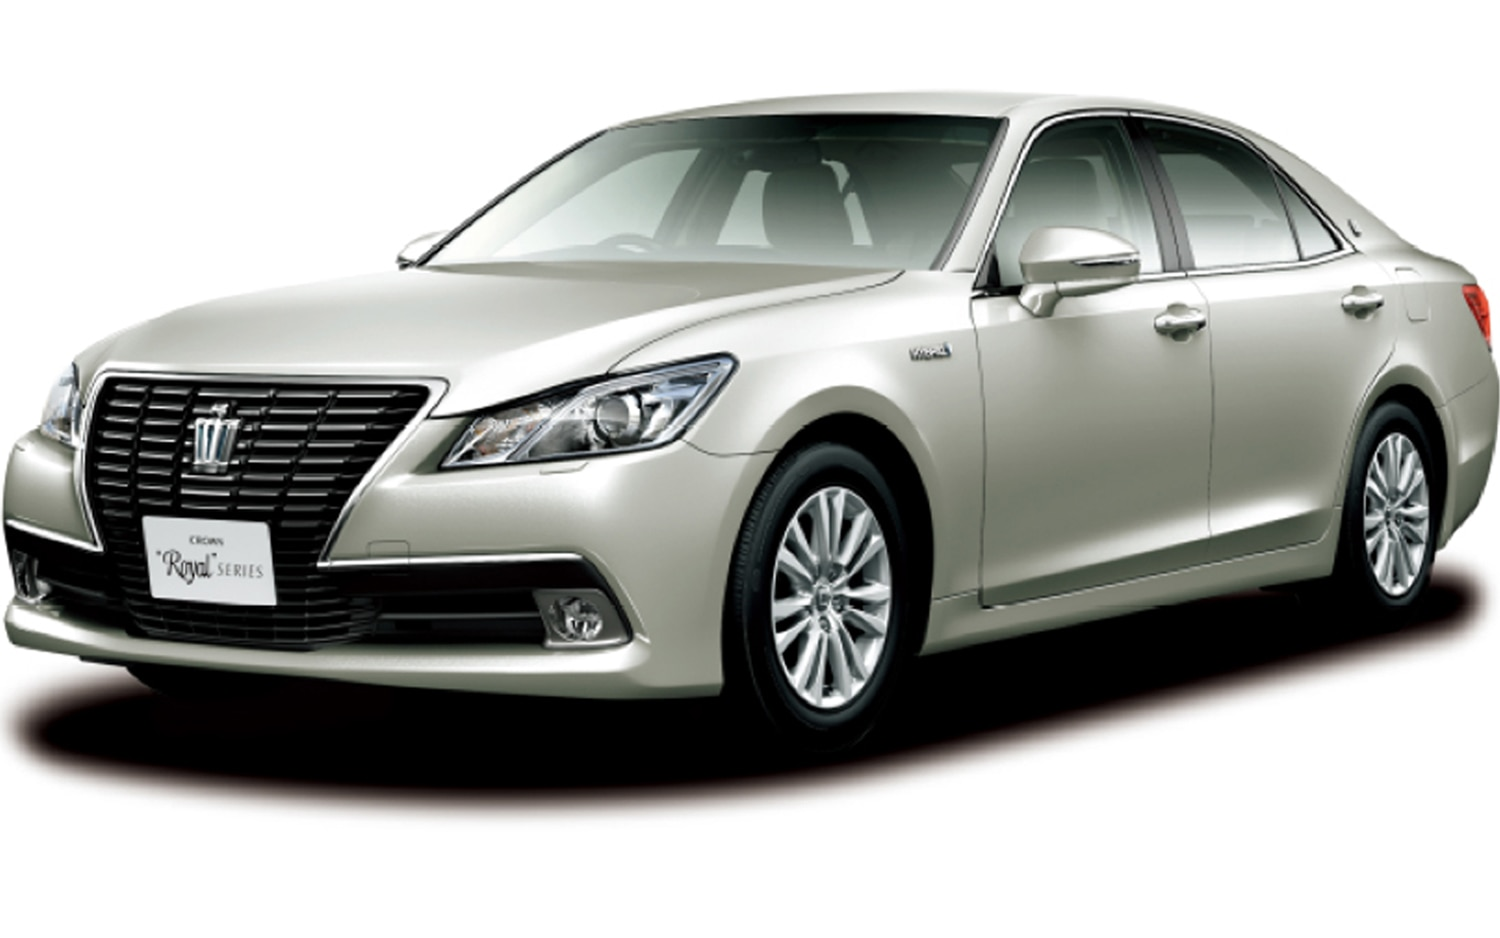 Toyota Crown Royal Saloon G Front Three Quarter View1